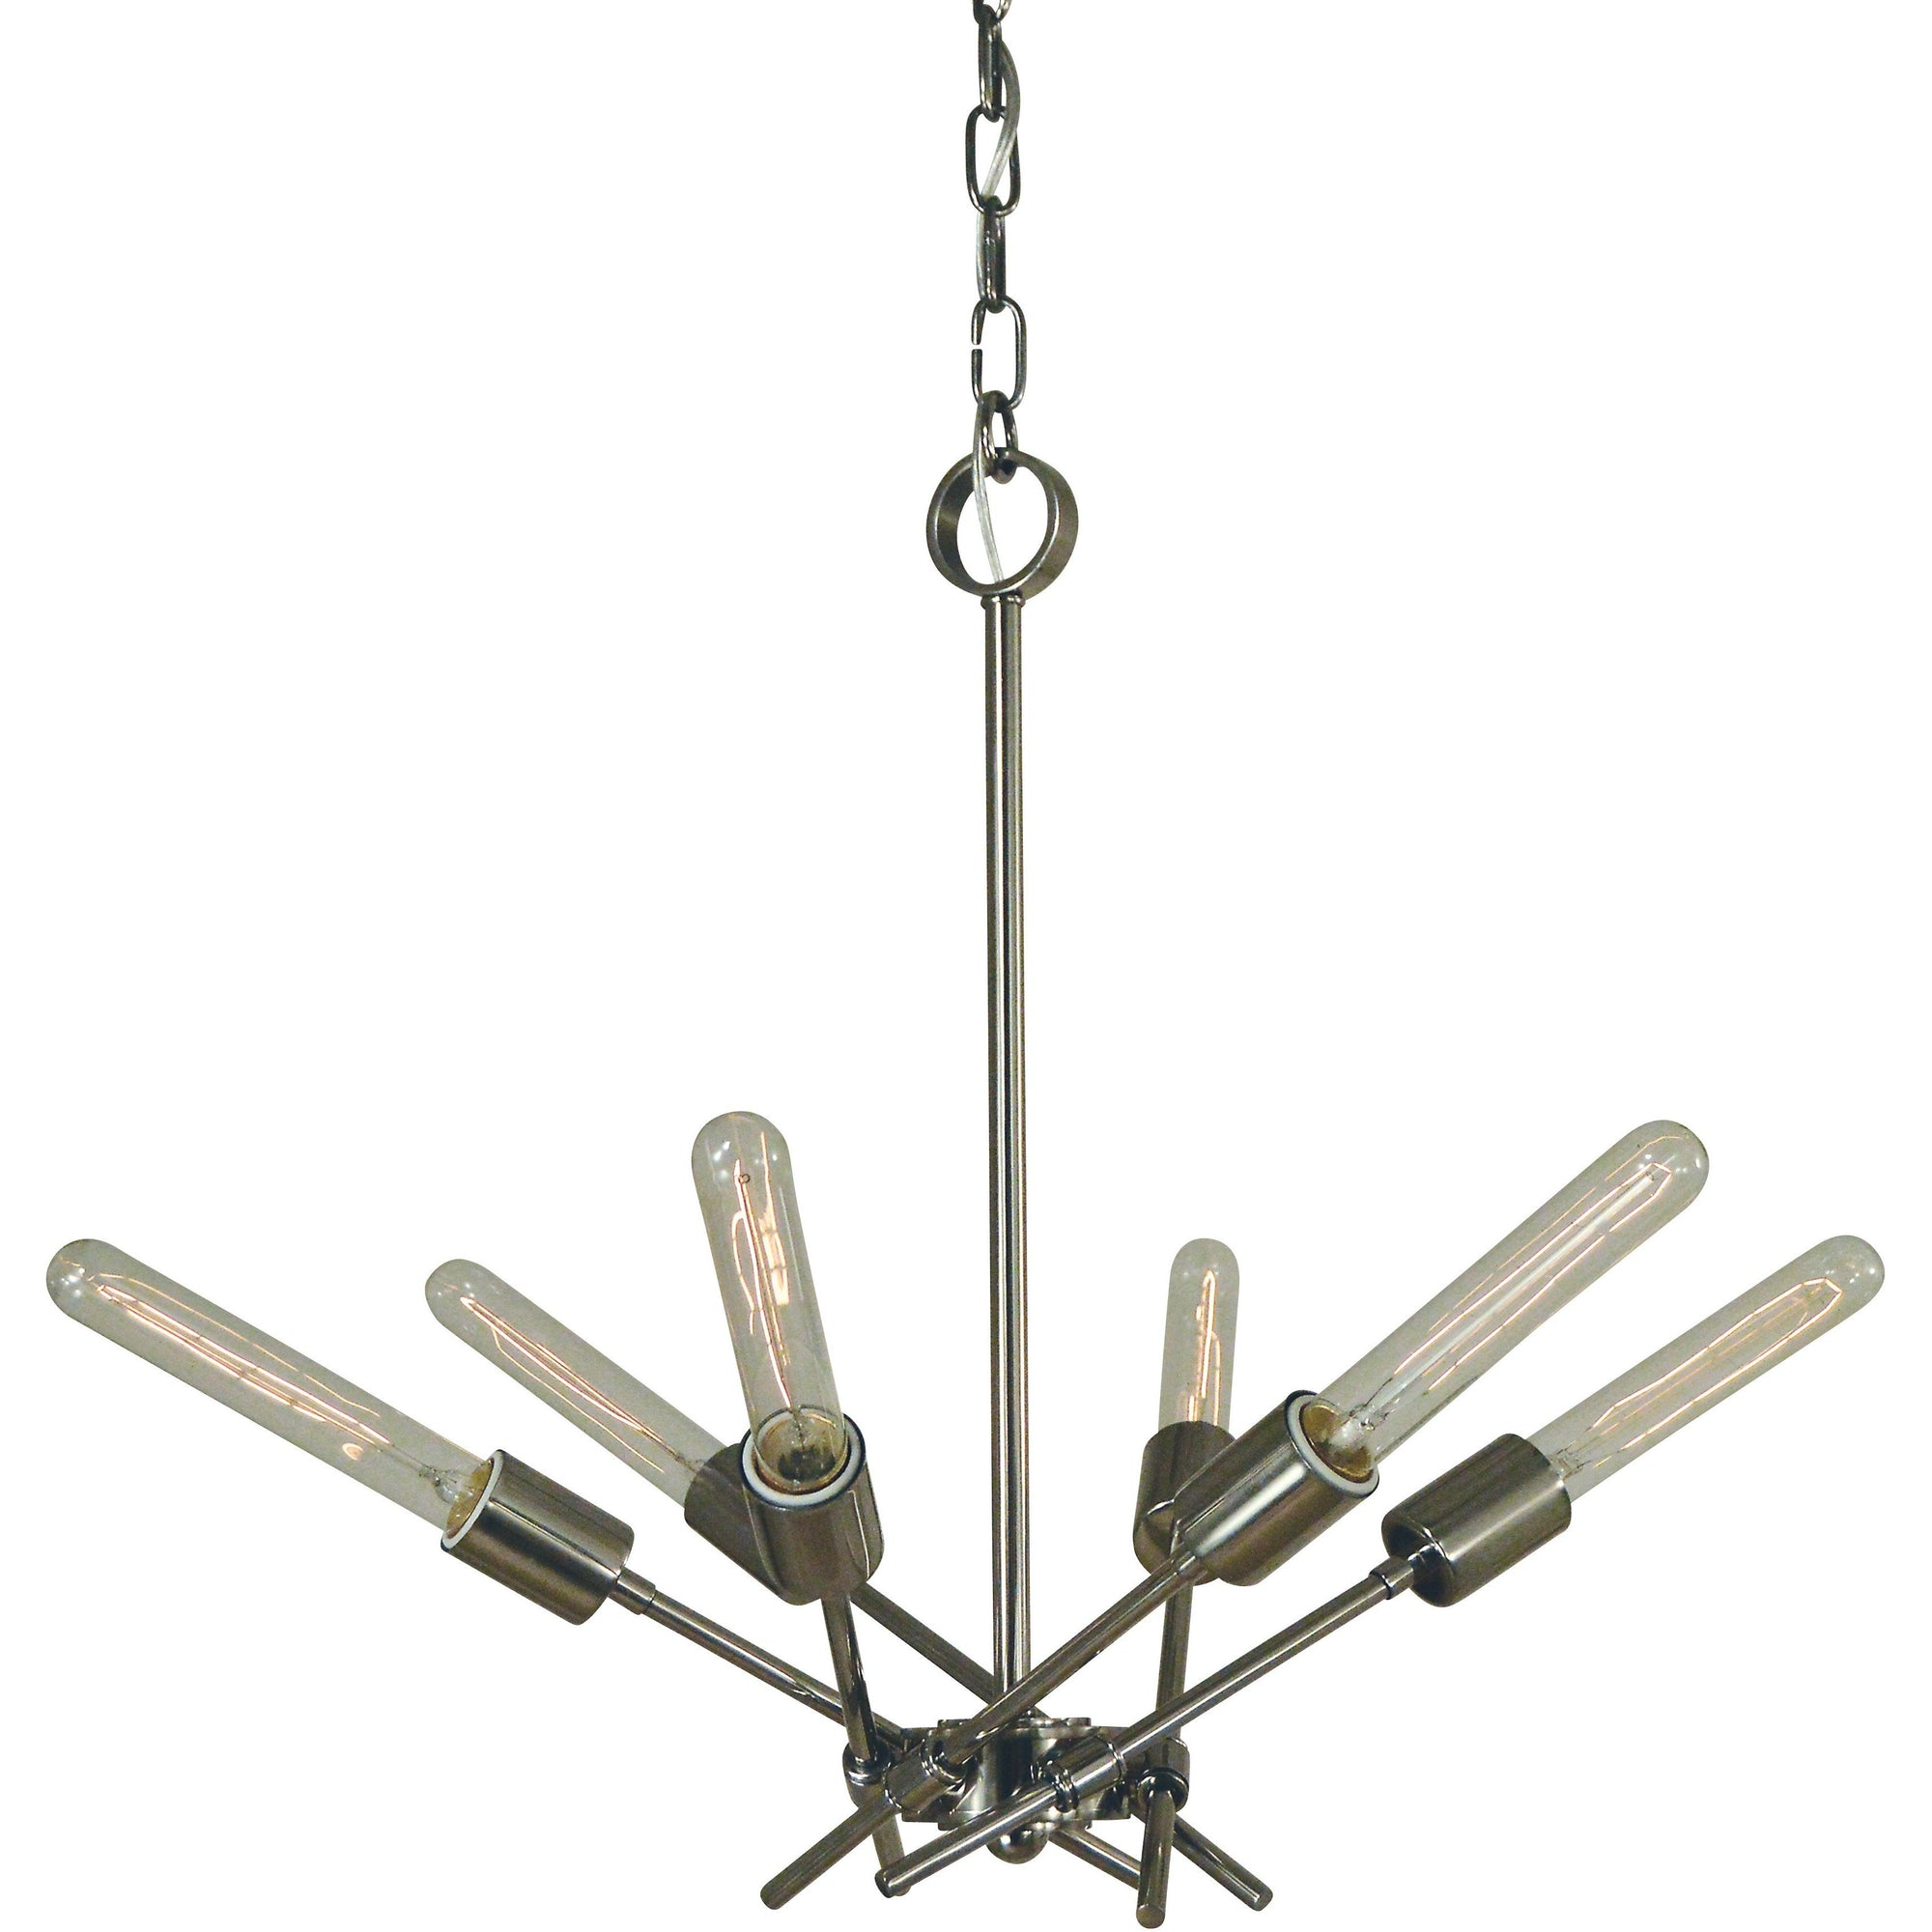 Framburg Chandeliers Polished Nickel 6-Light Polished Nickel Quasar Chandelier by Framburg 3076